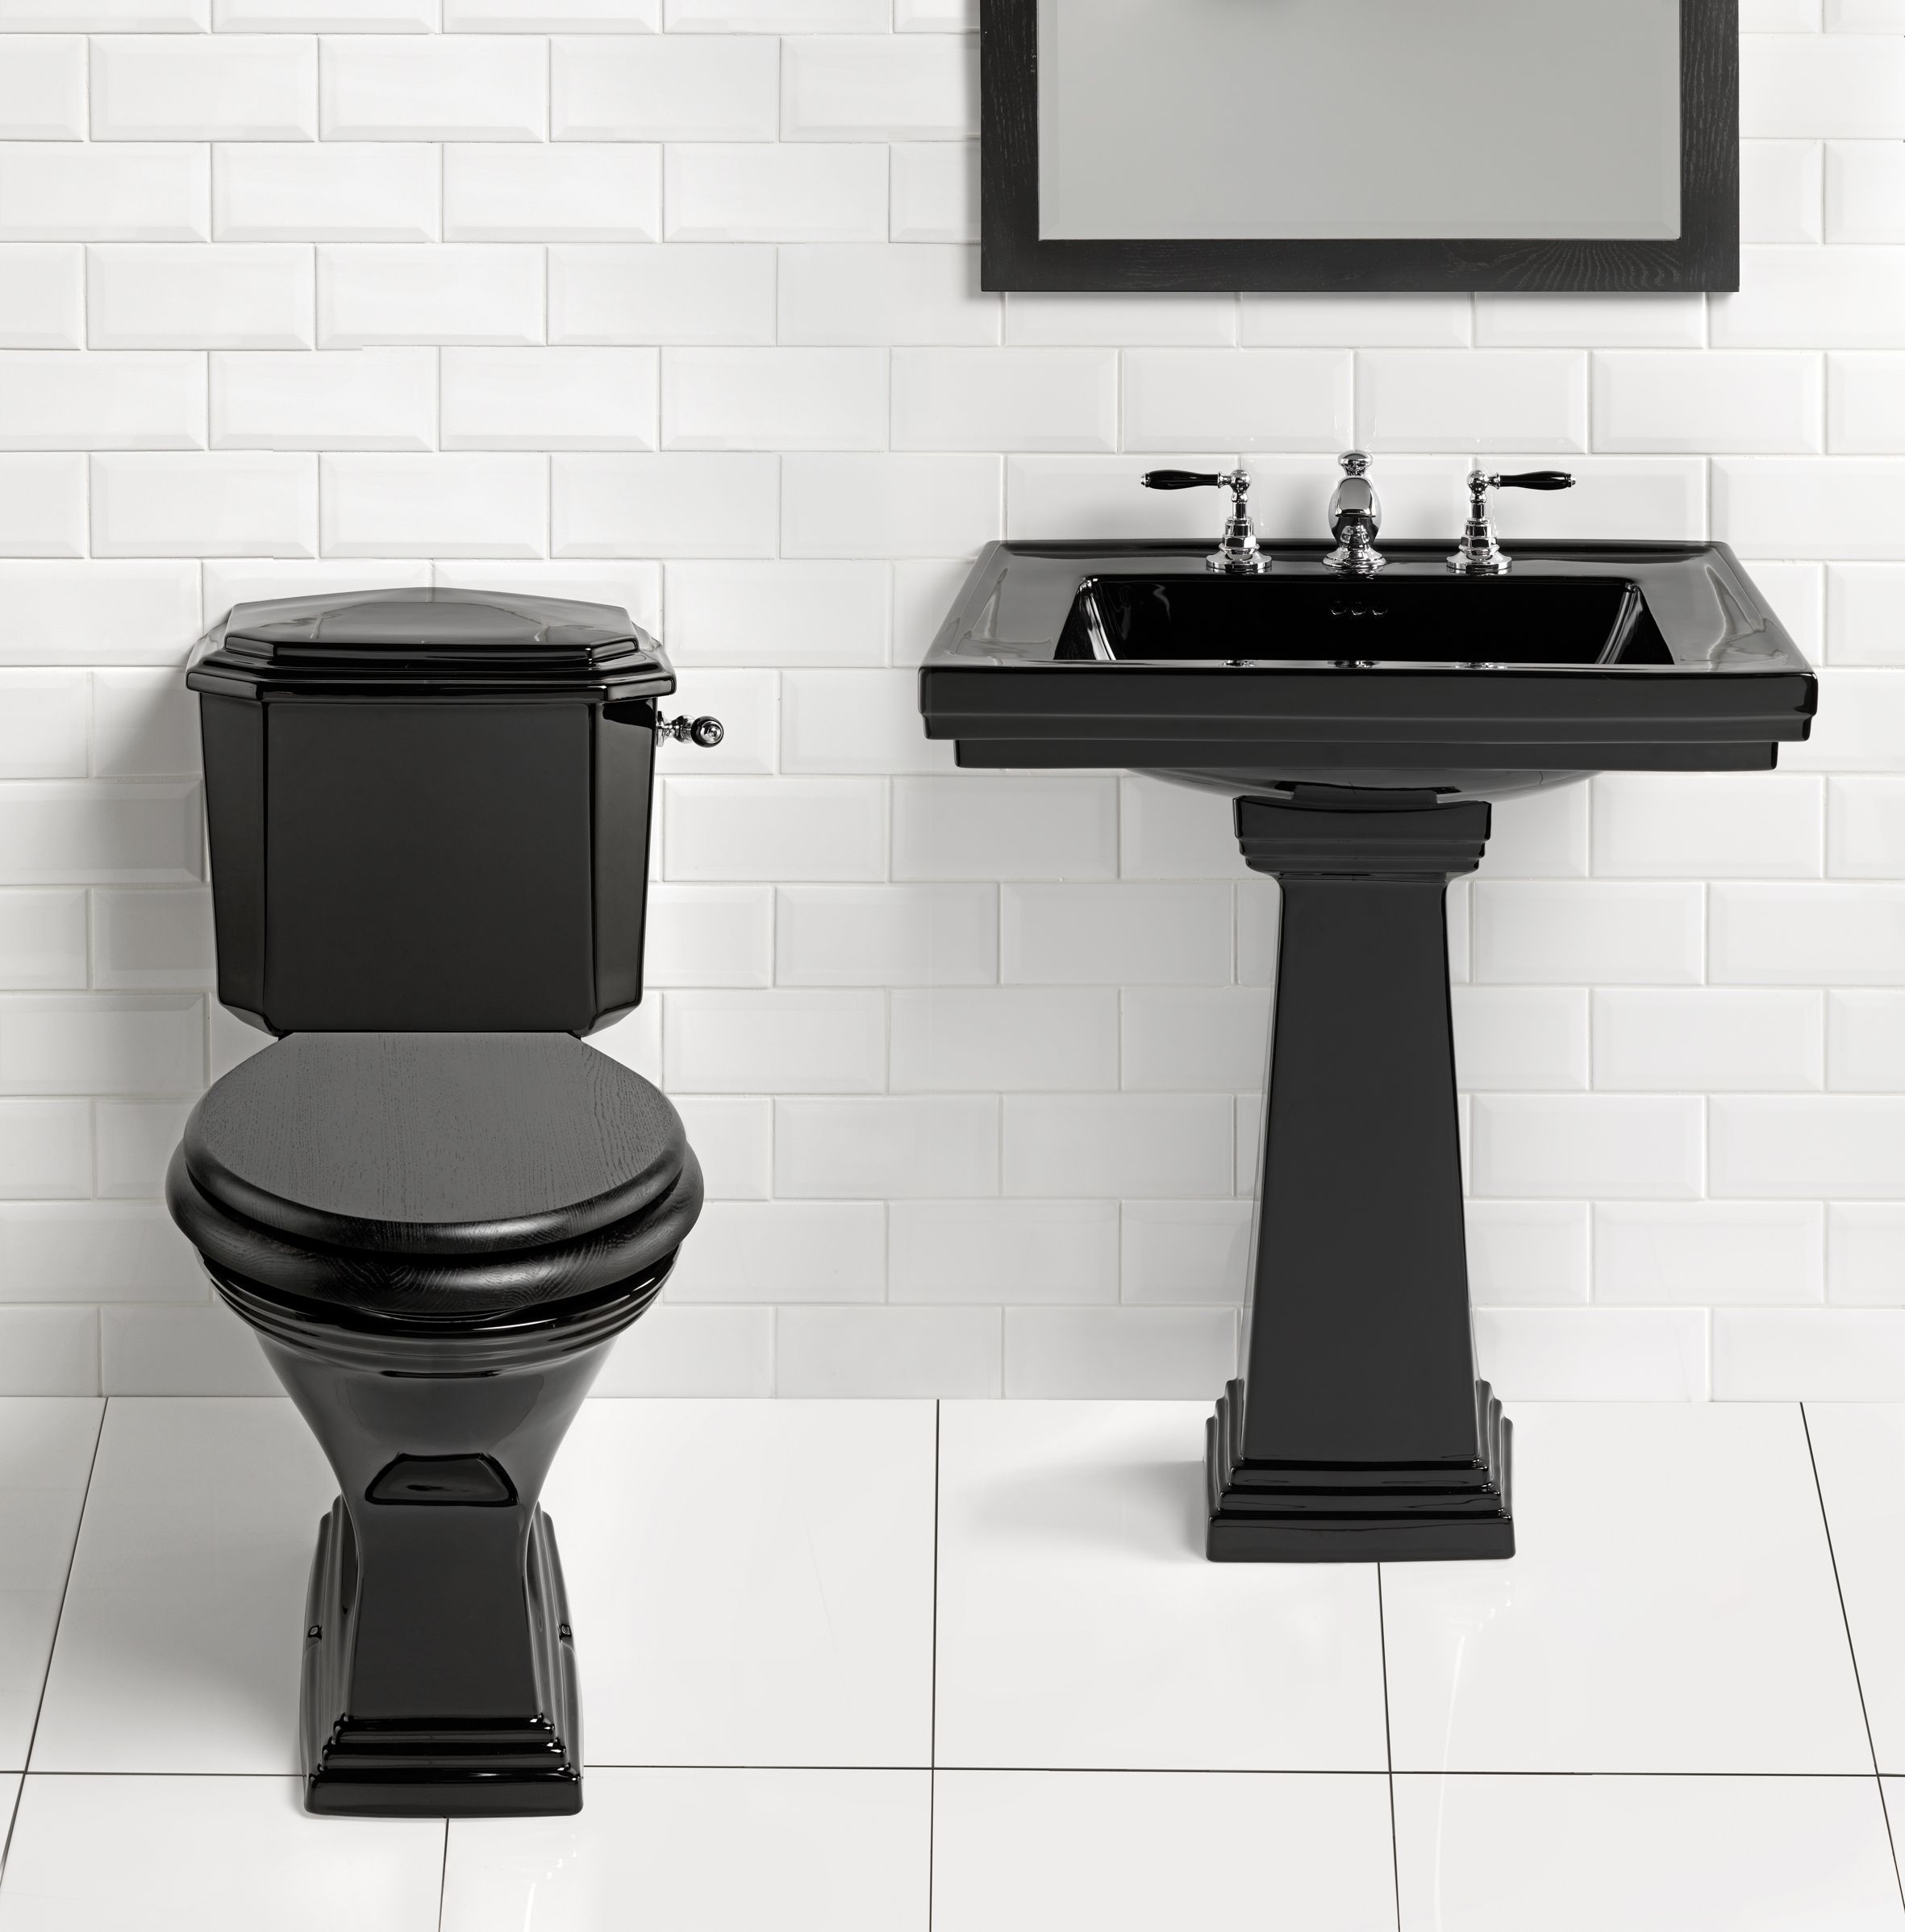 Charmant High Resolution Bathroom Images For Best Home Decoration: Modern Black  Toilet And Pedestal Sink With Bathroom Mirror Also White Subway Tile Walls  For High ...